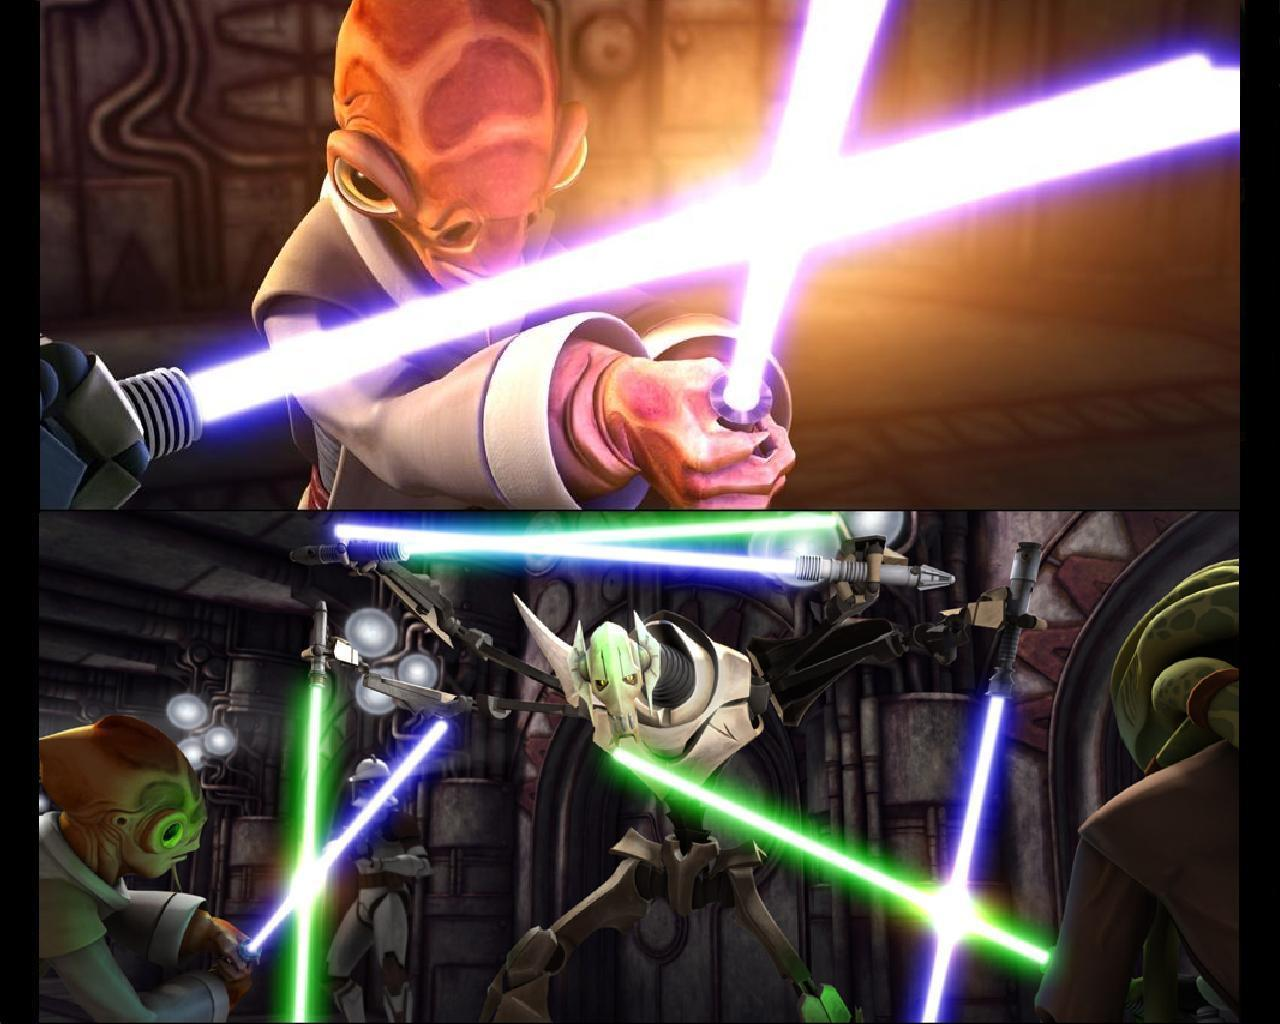 CLONE WARS Episode 10 Lair of Grievous